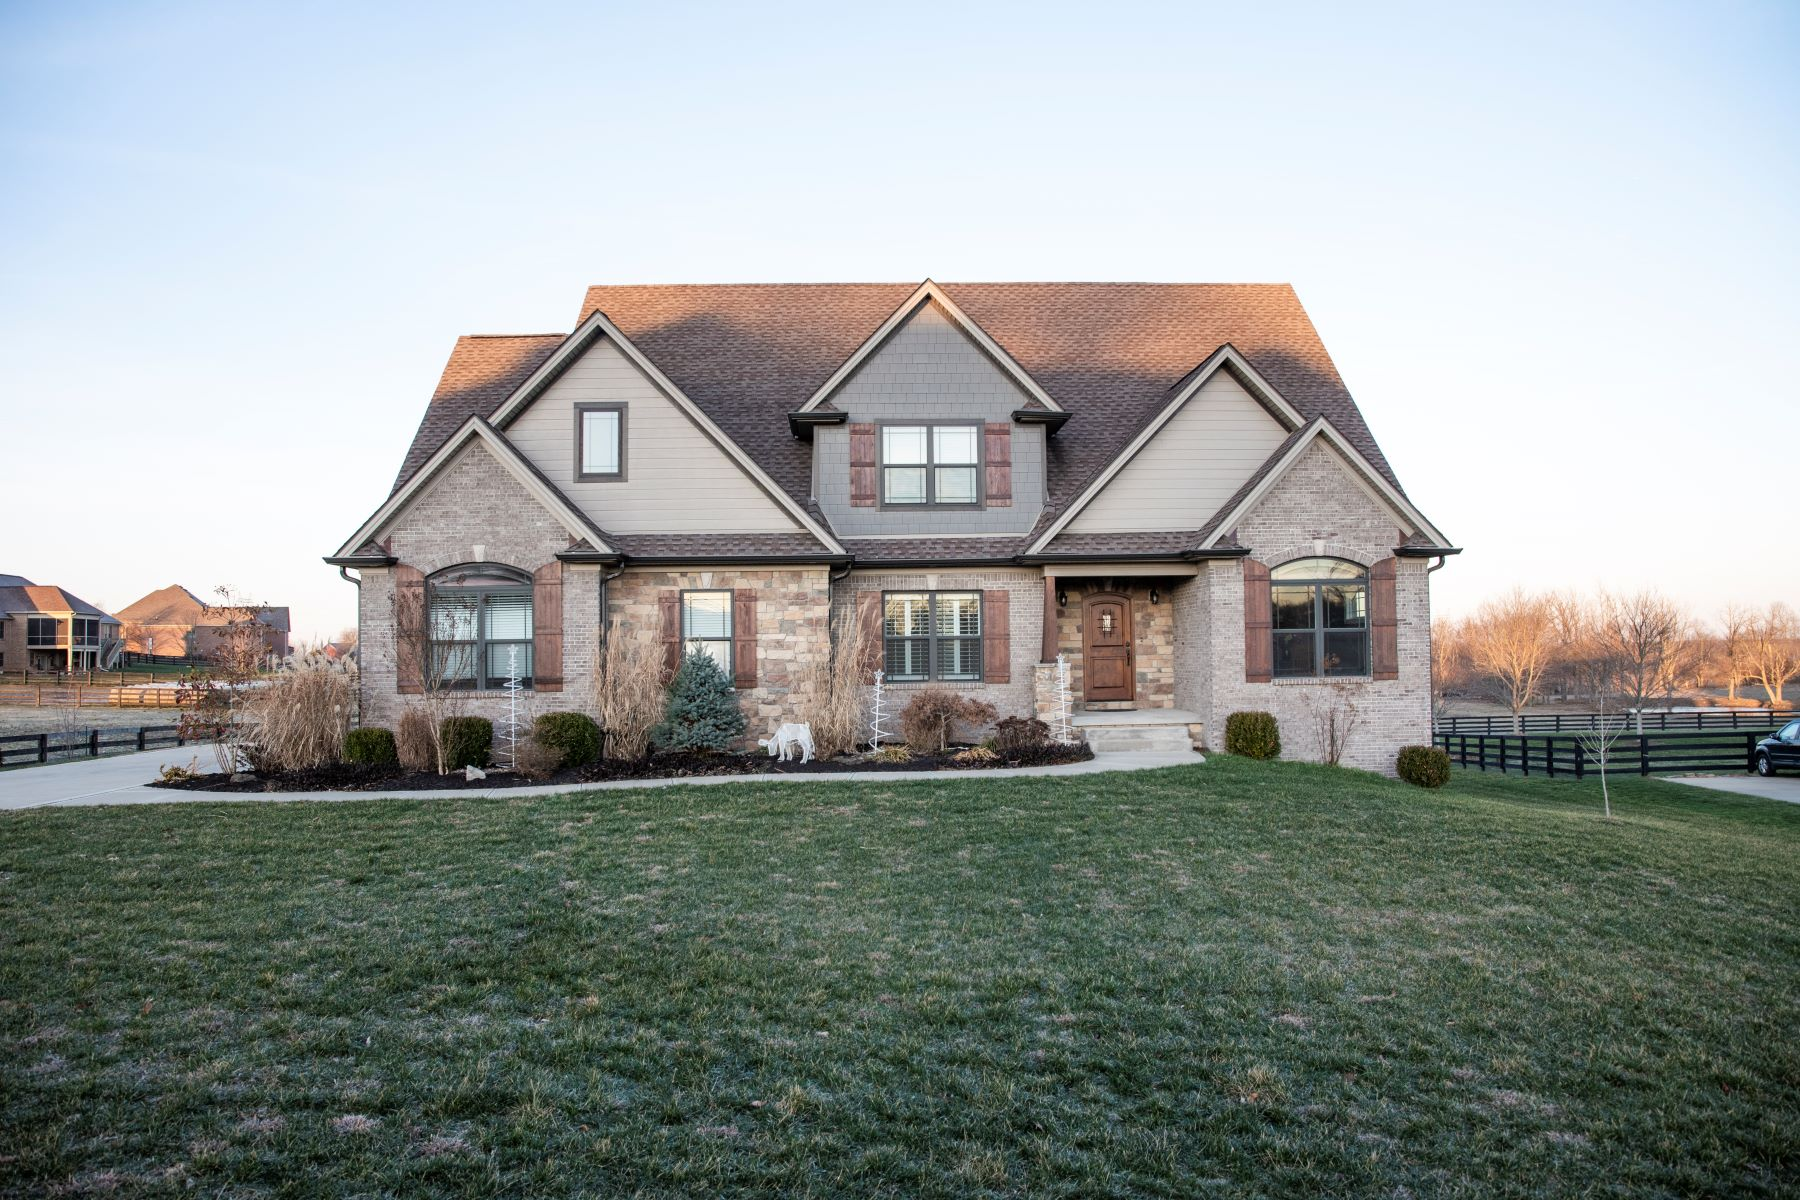 Single Family Homes for Sale at 103 Hidden Meadow Lane Nicholasville, Kentucky 40356 United States